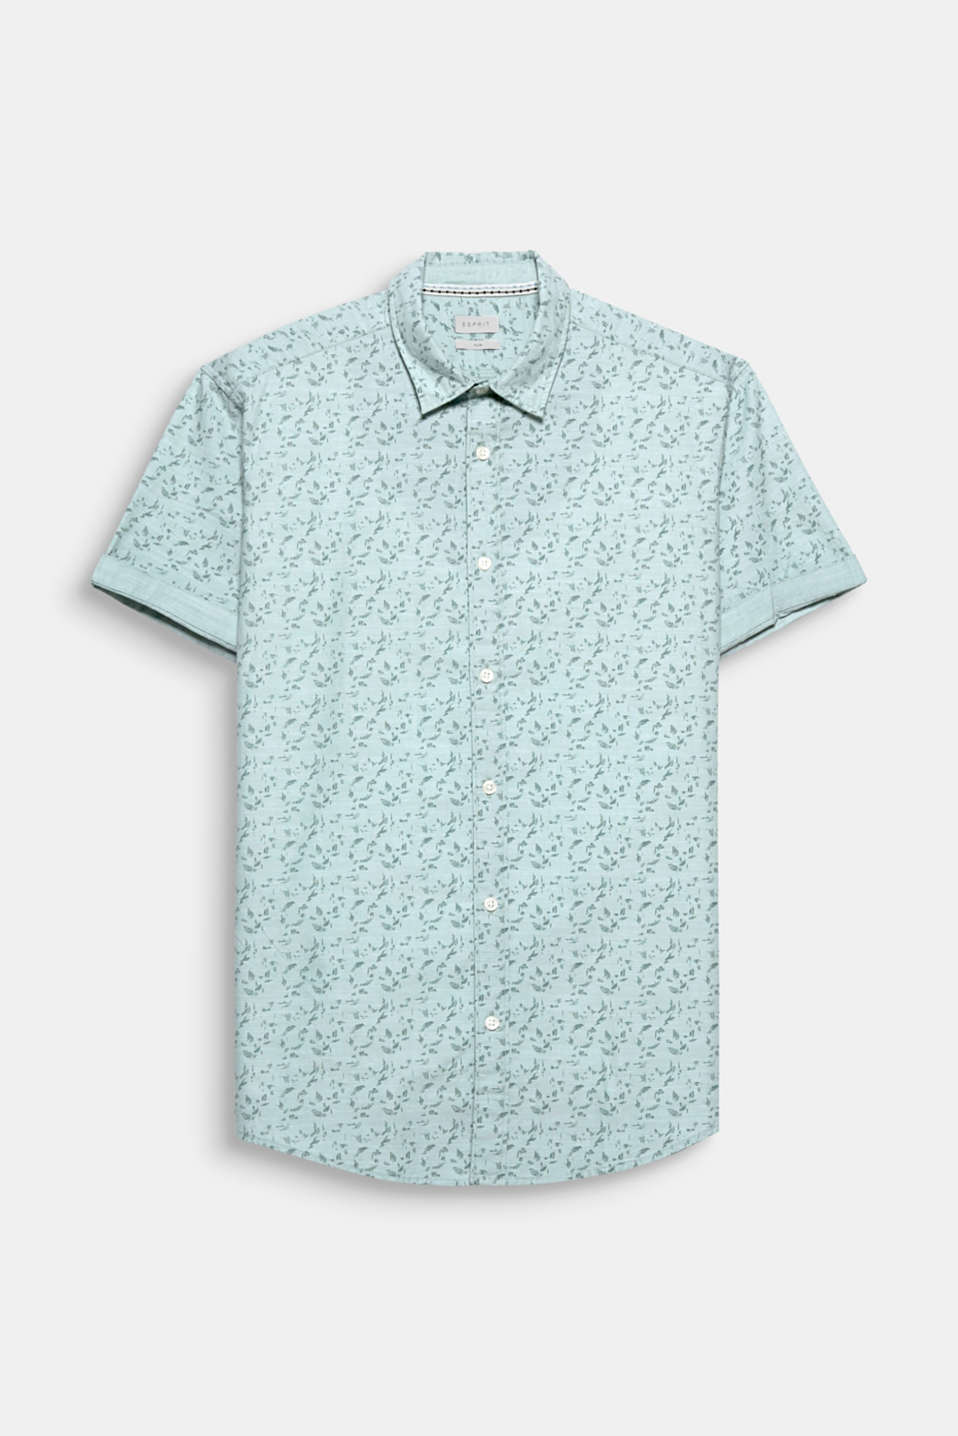 Trend: tropical prints! The lightweight cotton fabric and the trendy print gives this short sleeve shirt an exciting look.